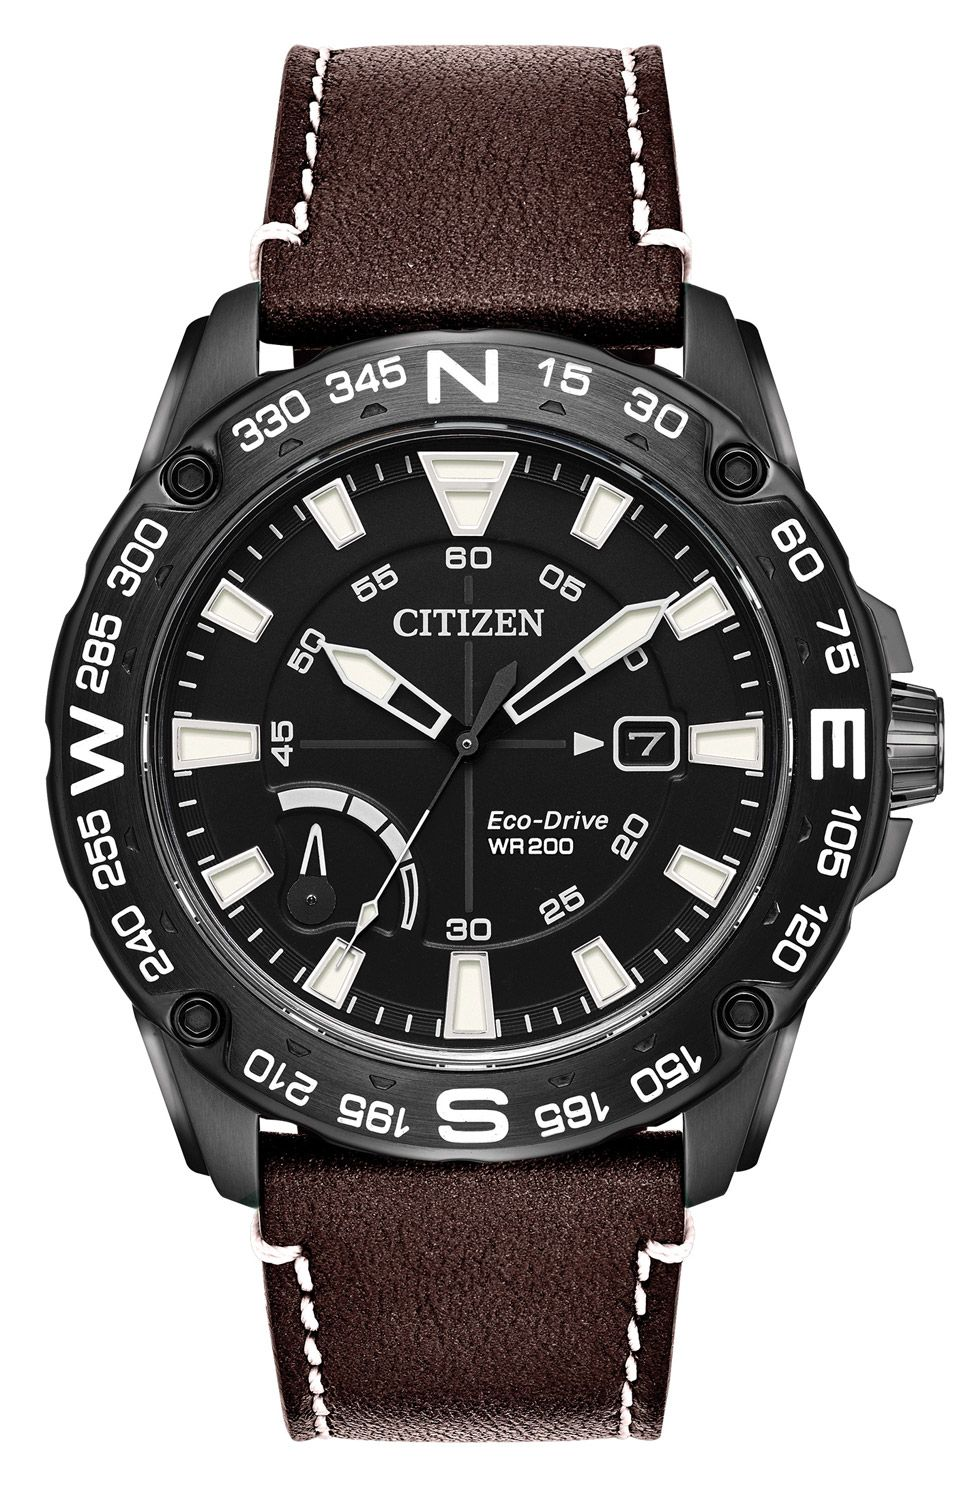 537a71846f57dd Citizen Eco-Drive CITIZEN PRT Black Stainless Steel And Brown Leather Mens  Watch - AW7045-09E